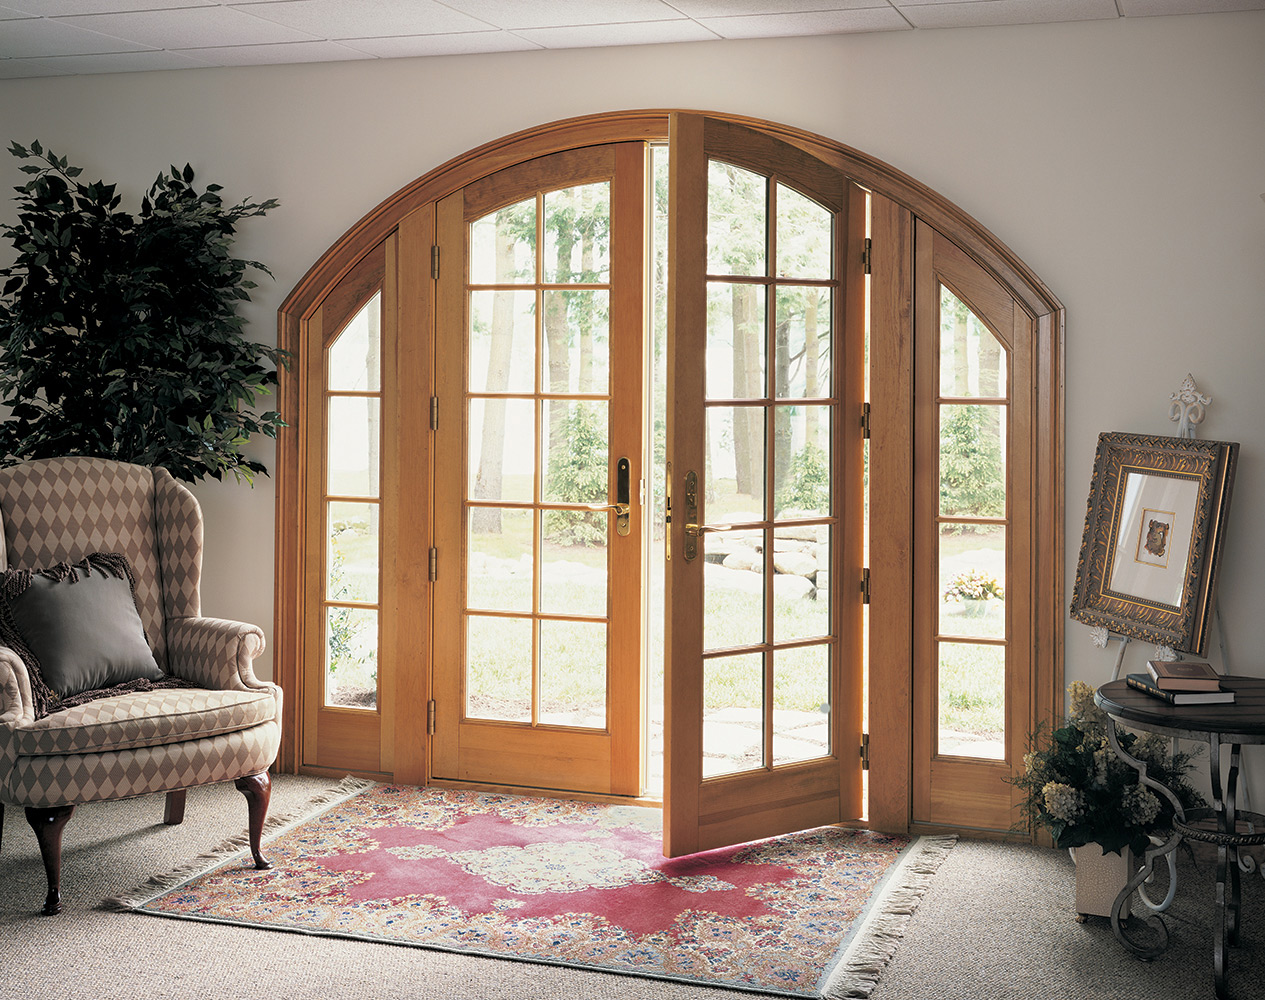 Replacement patio doors wisconsin hometowne windows for French door style patio doors